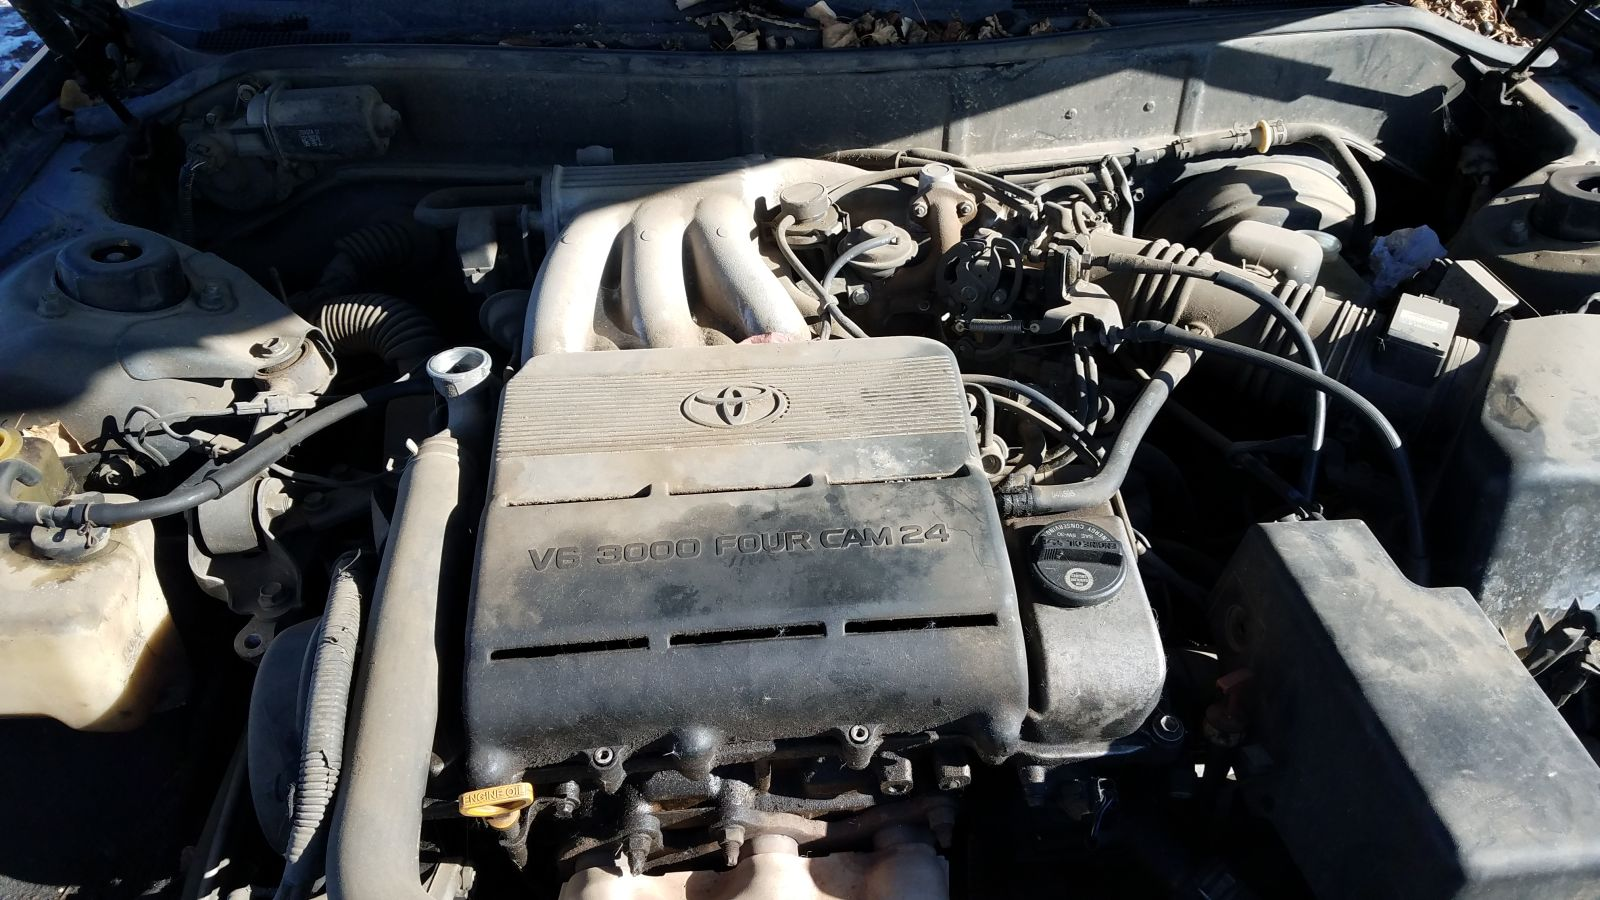 The base engine in the '96 Camry was a 2.2-liter DOHC four rated at 125  horsepower. This car has the optional 3-liter V6 engine, good for 188  horses.